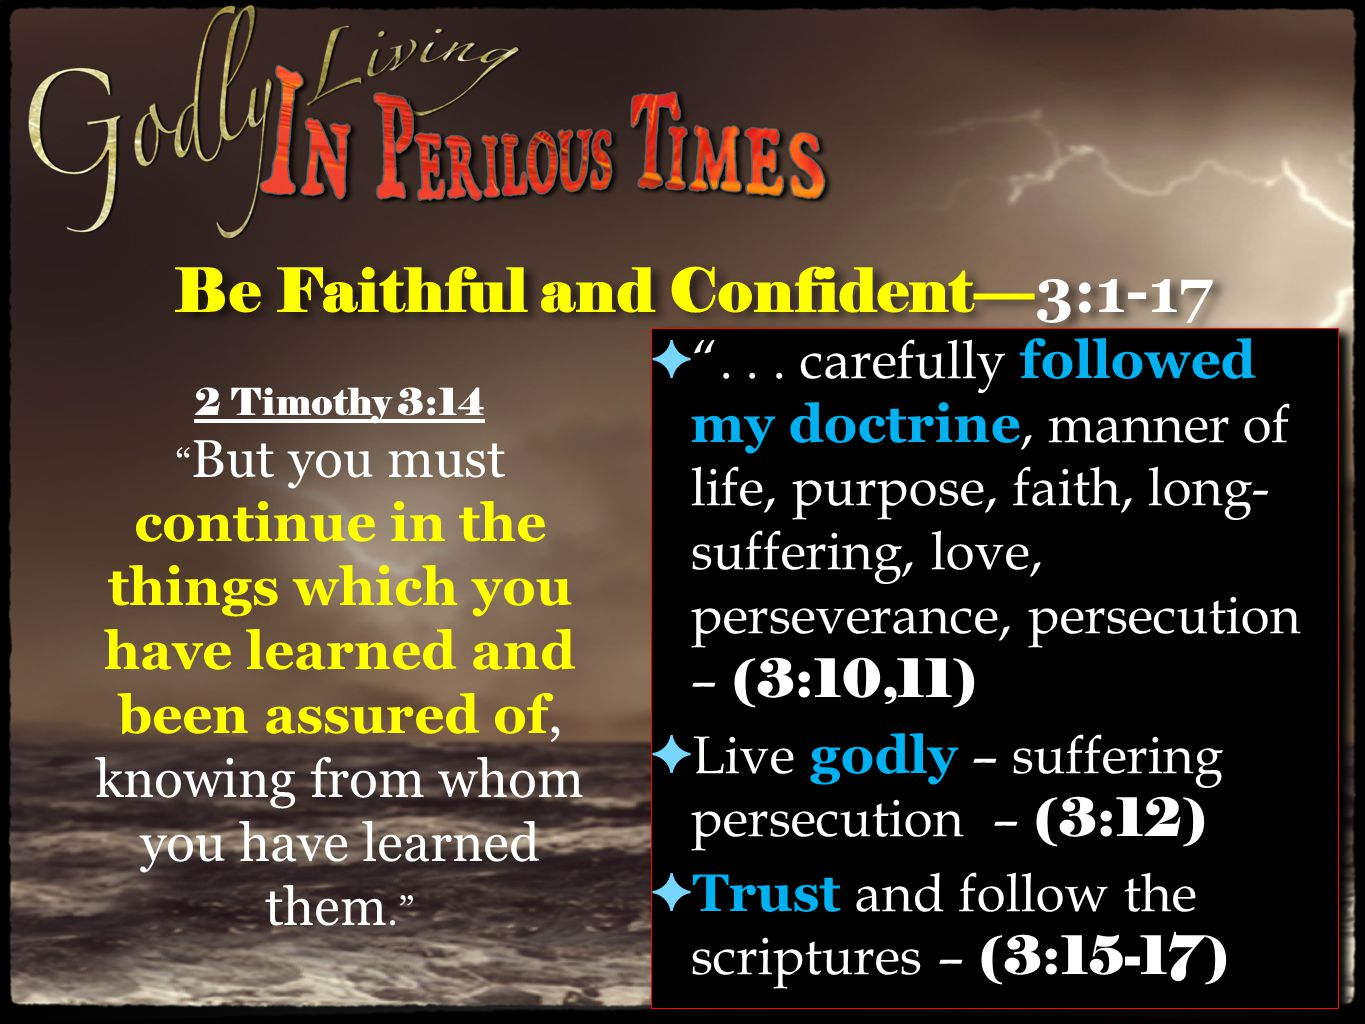 Be Persistent and Vigilant— 4:1-5 ✦ Men will NOT endure sound doctrine - (4:3) ✦ Men will formulate doctrines to conform to what they want to believe and practice – (4:3) ✦ Seeking teachers to satisfy what they want – (4:3) ✦ Turning from the truth to fables – (4:4) ✦ Men will NOT endure sound doctrine - (4:3) ✦ Men will formulate doctrines to conform to what they want to believe and practice – (4:3) ✦ Seeking teachers to satisfy what they want – (4:3) ✦ Turning from the truth to fables – (4:4) 2 Timothy 4:5 But you be watchful in all things, endure afflictions, do the work of an evangelist, fulfill your ministry.